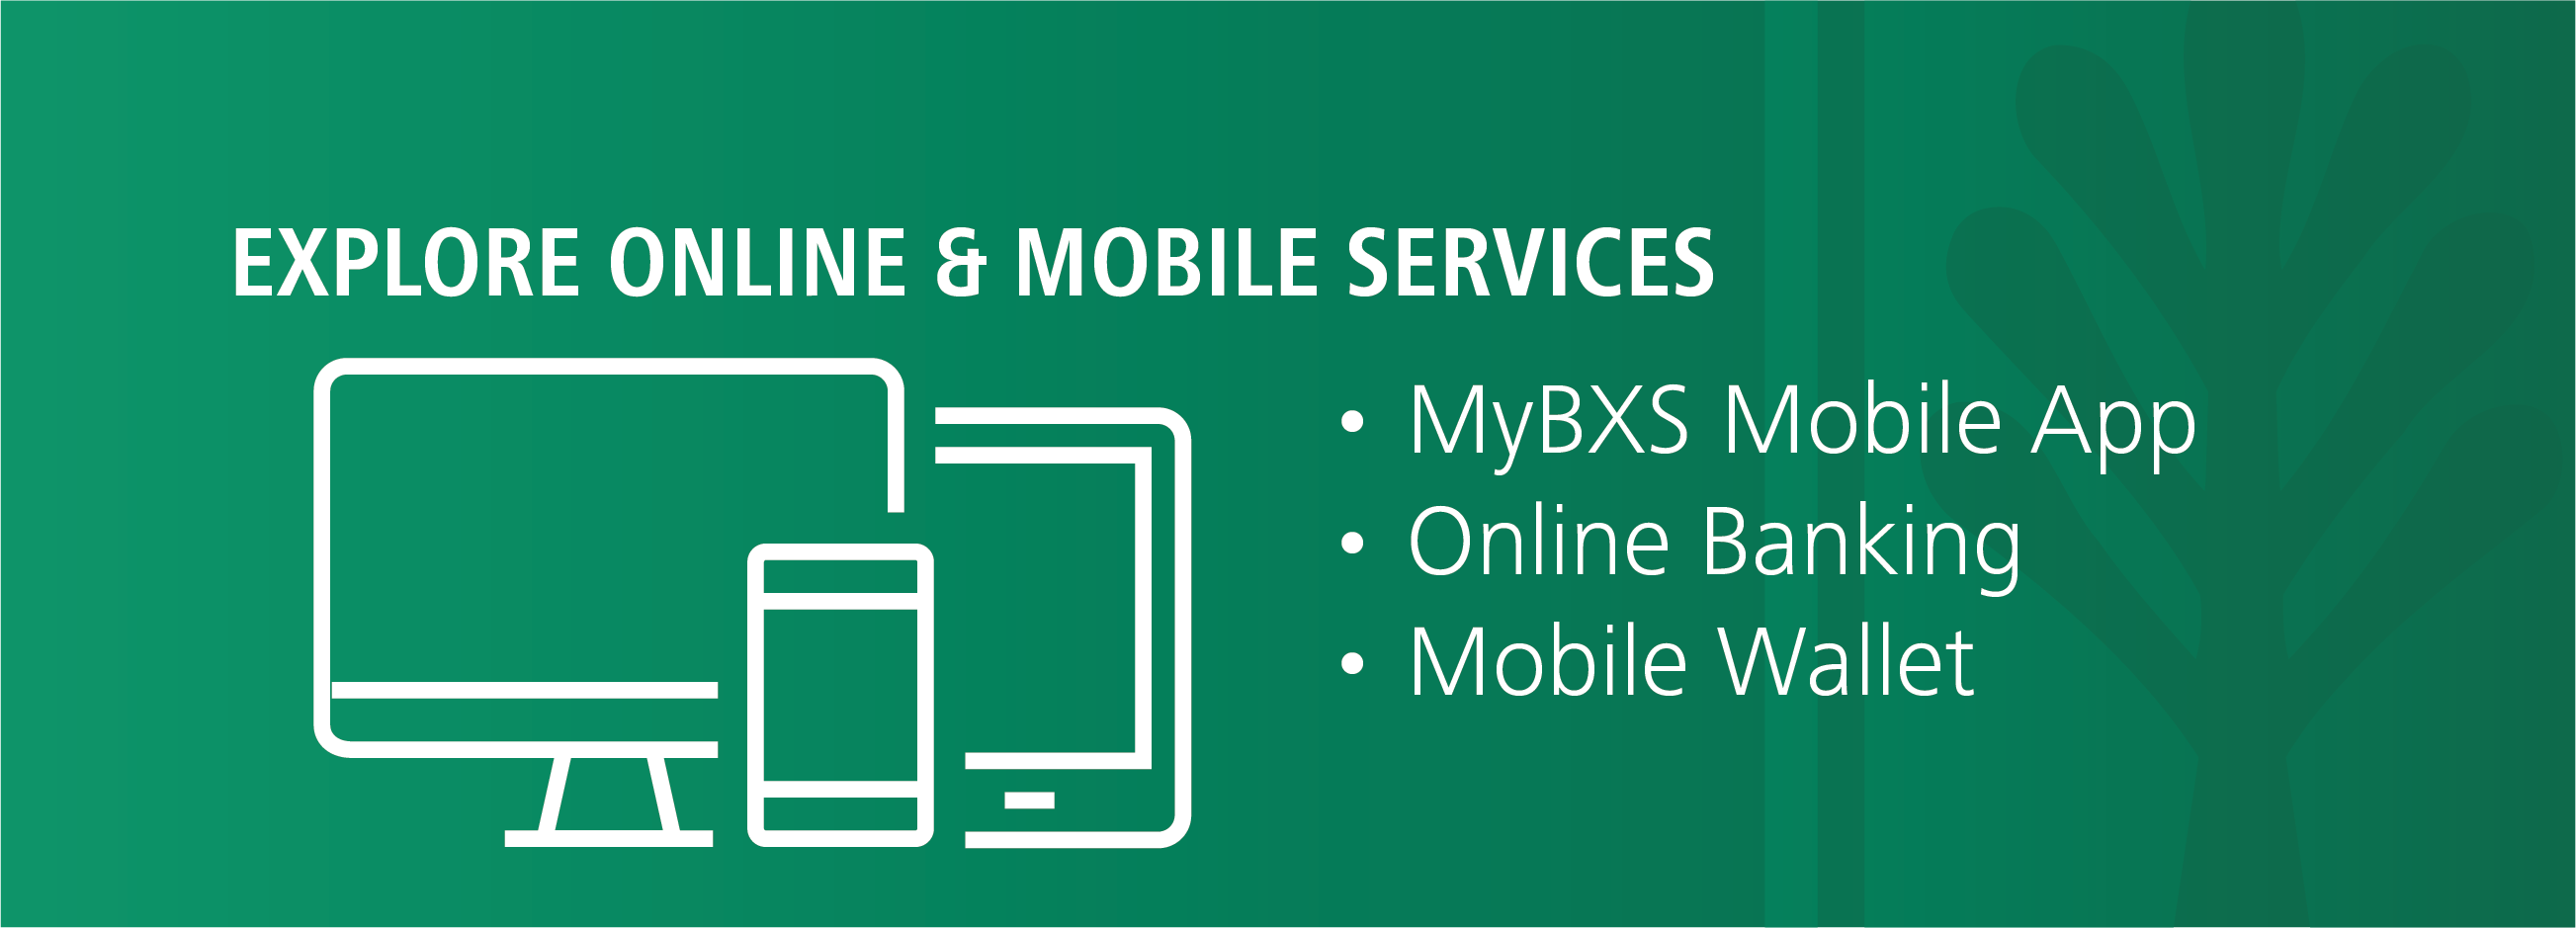 Explore Online and Mobile Services